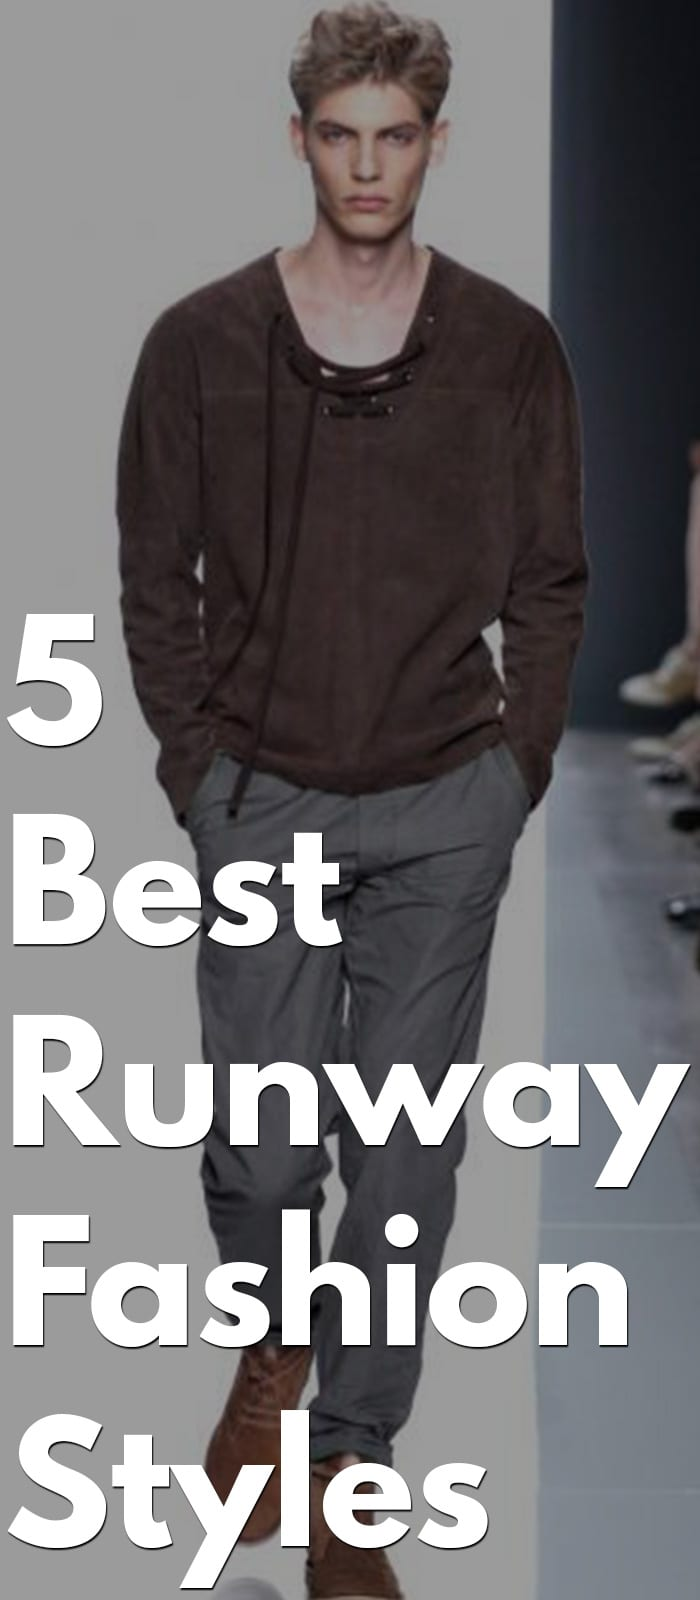 Best Runway Fashion- T-shirt, Chino, Sneakers, Trouser,Boots, Etc